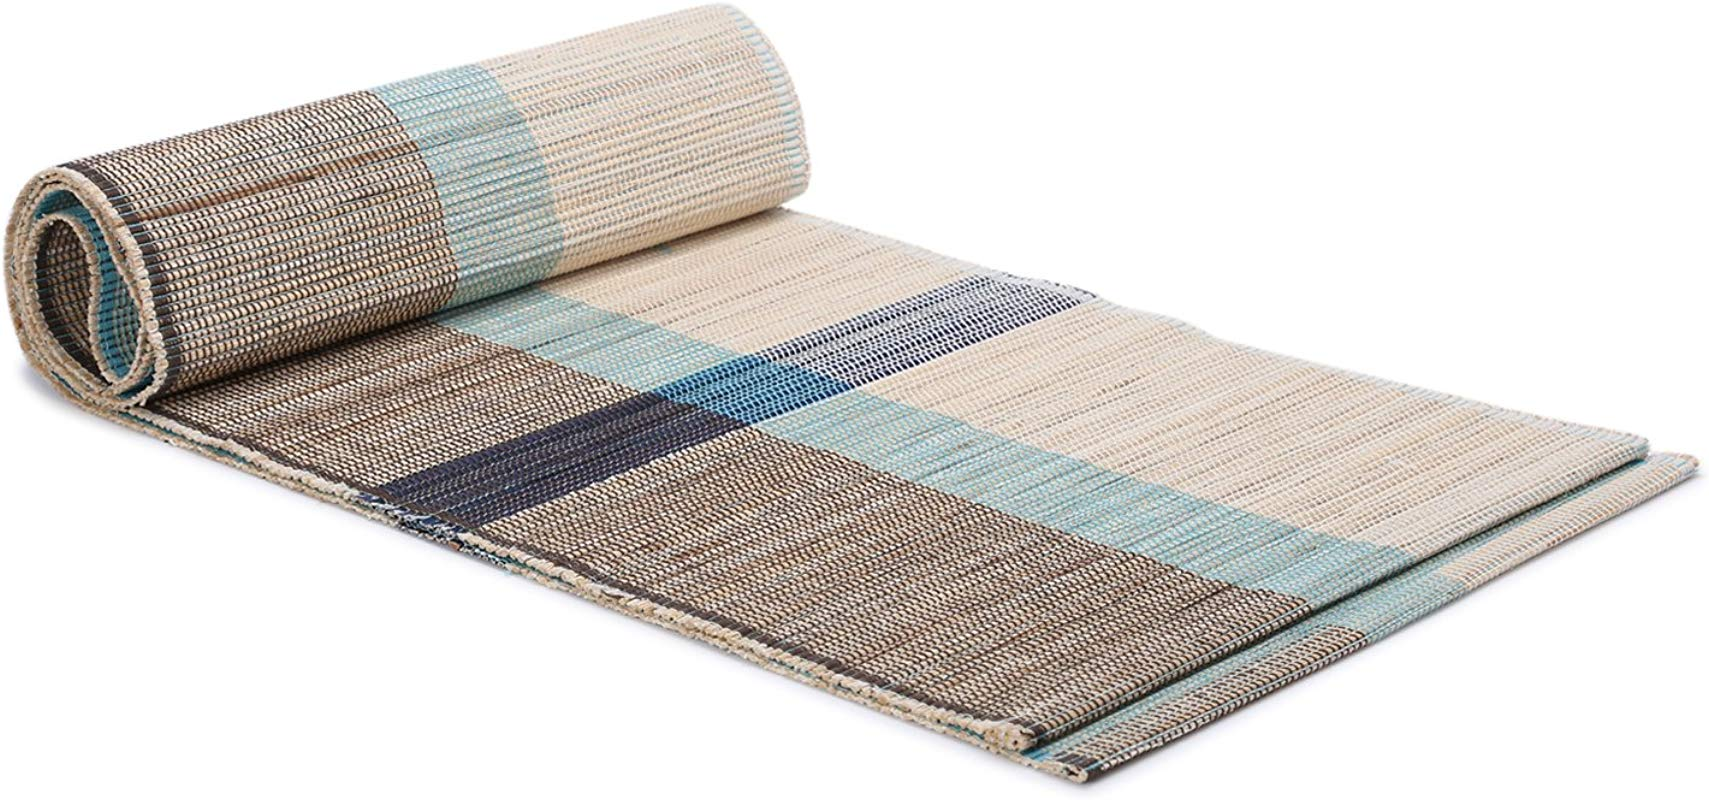 ShalinIndia Handloom Woven Eco Friendly Banana Bark And River Grass Cross Table Runner 13x72 Inch Kitchen Dining Home D Cor With A Cotton Bag